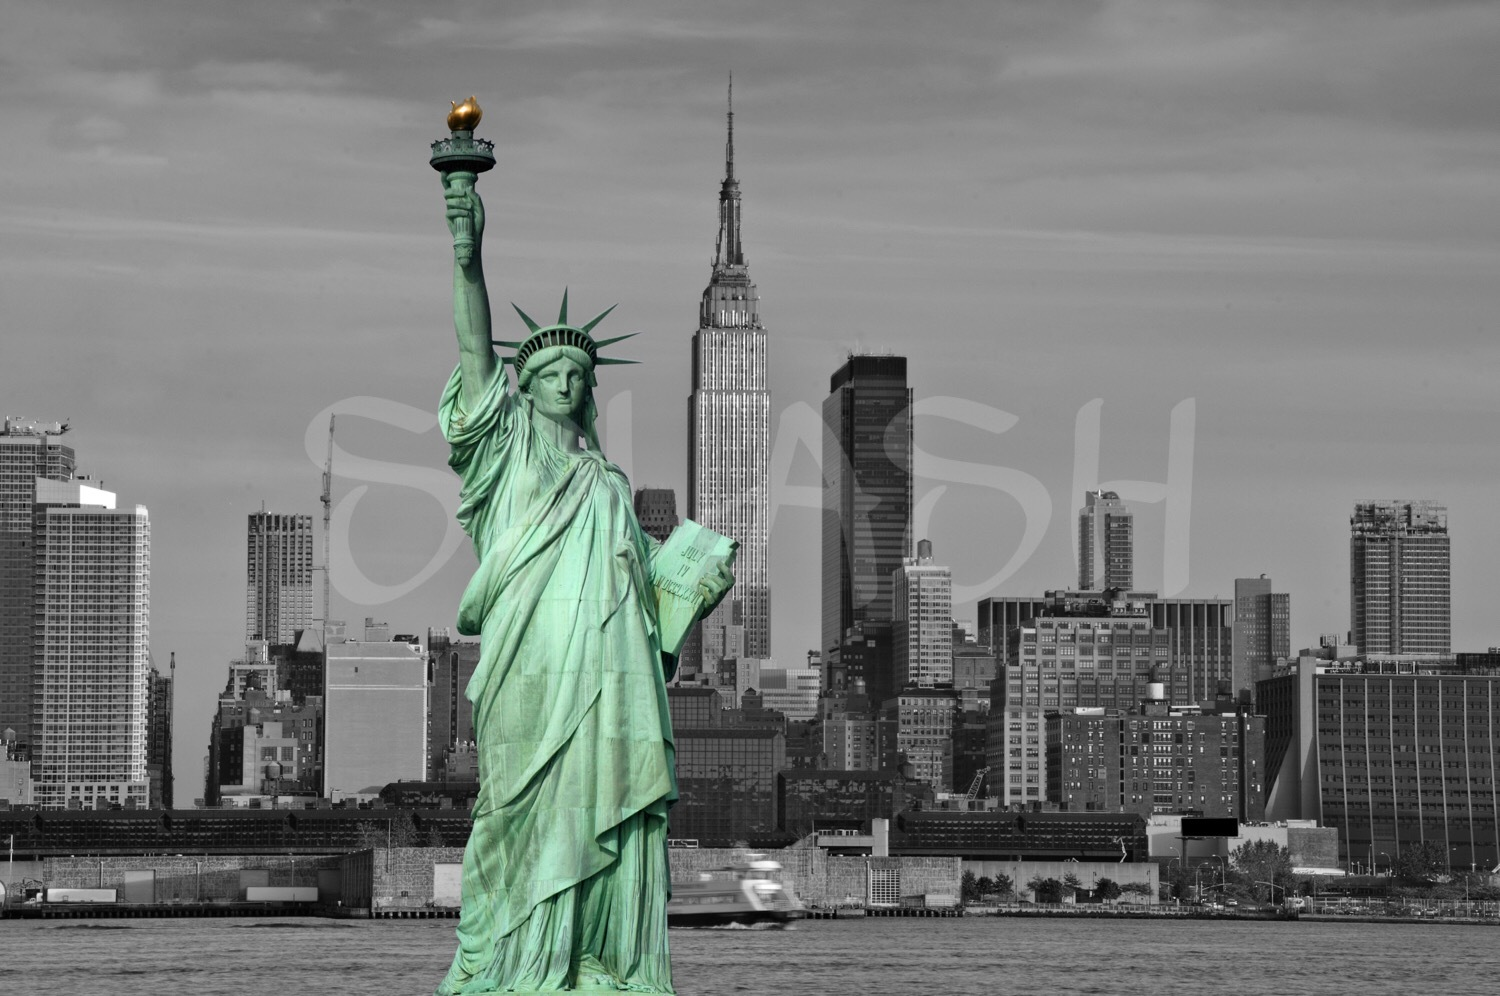 SP317-Cuadro-moderno-decoracion-guapo-splash-New_york-estatua-libertad-skyline-urbano-blanco-negro